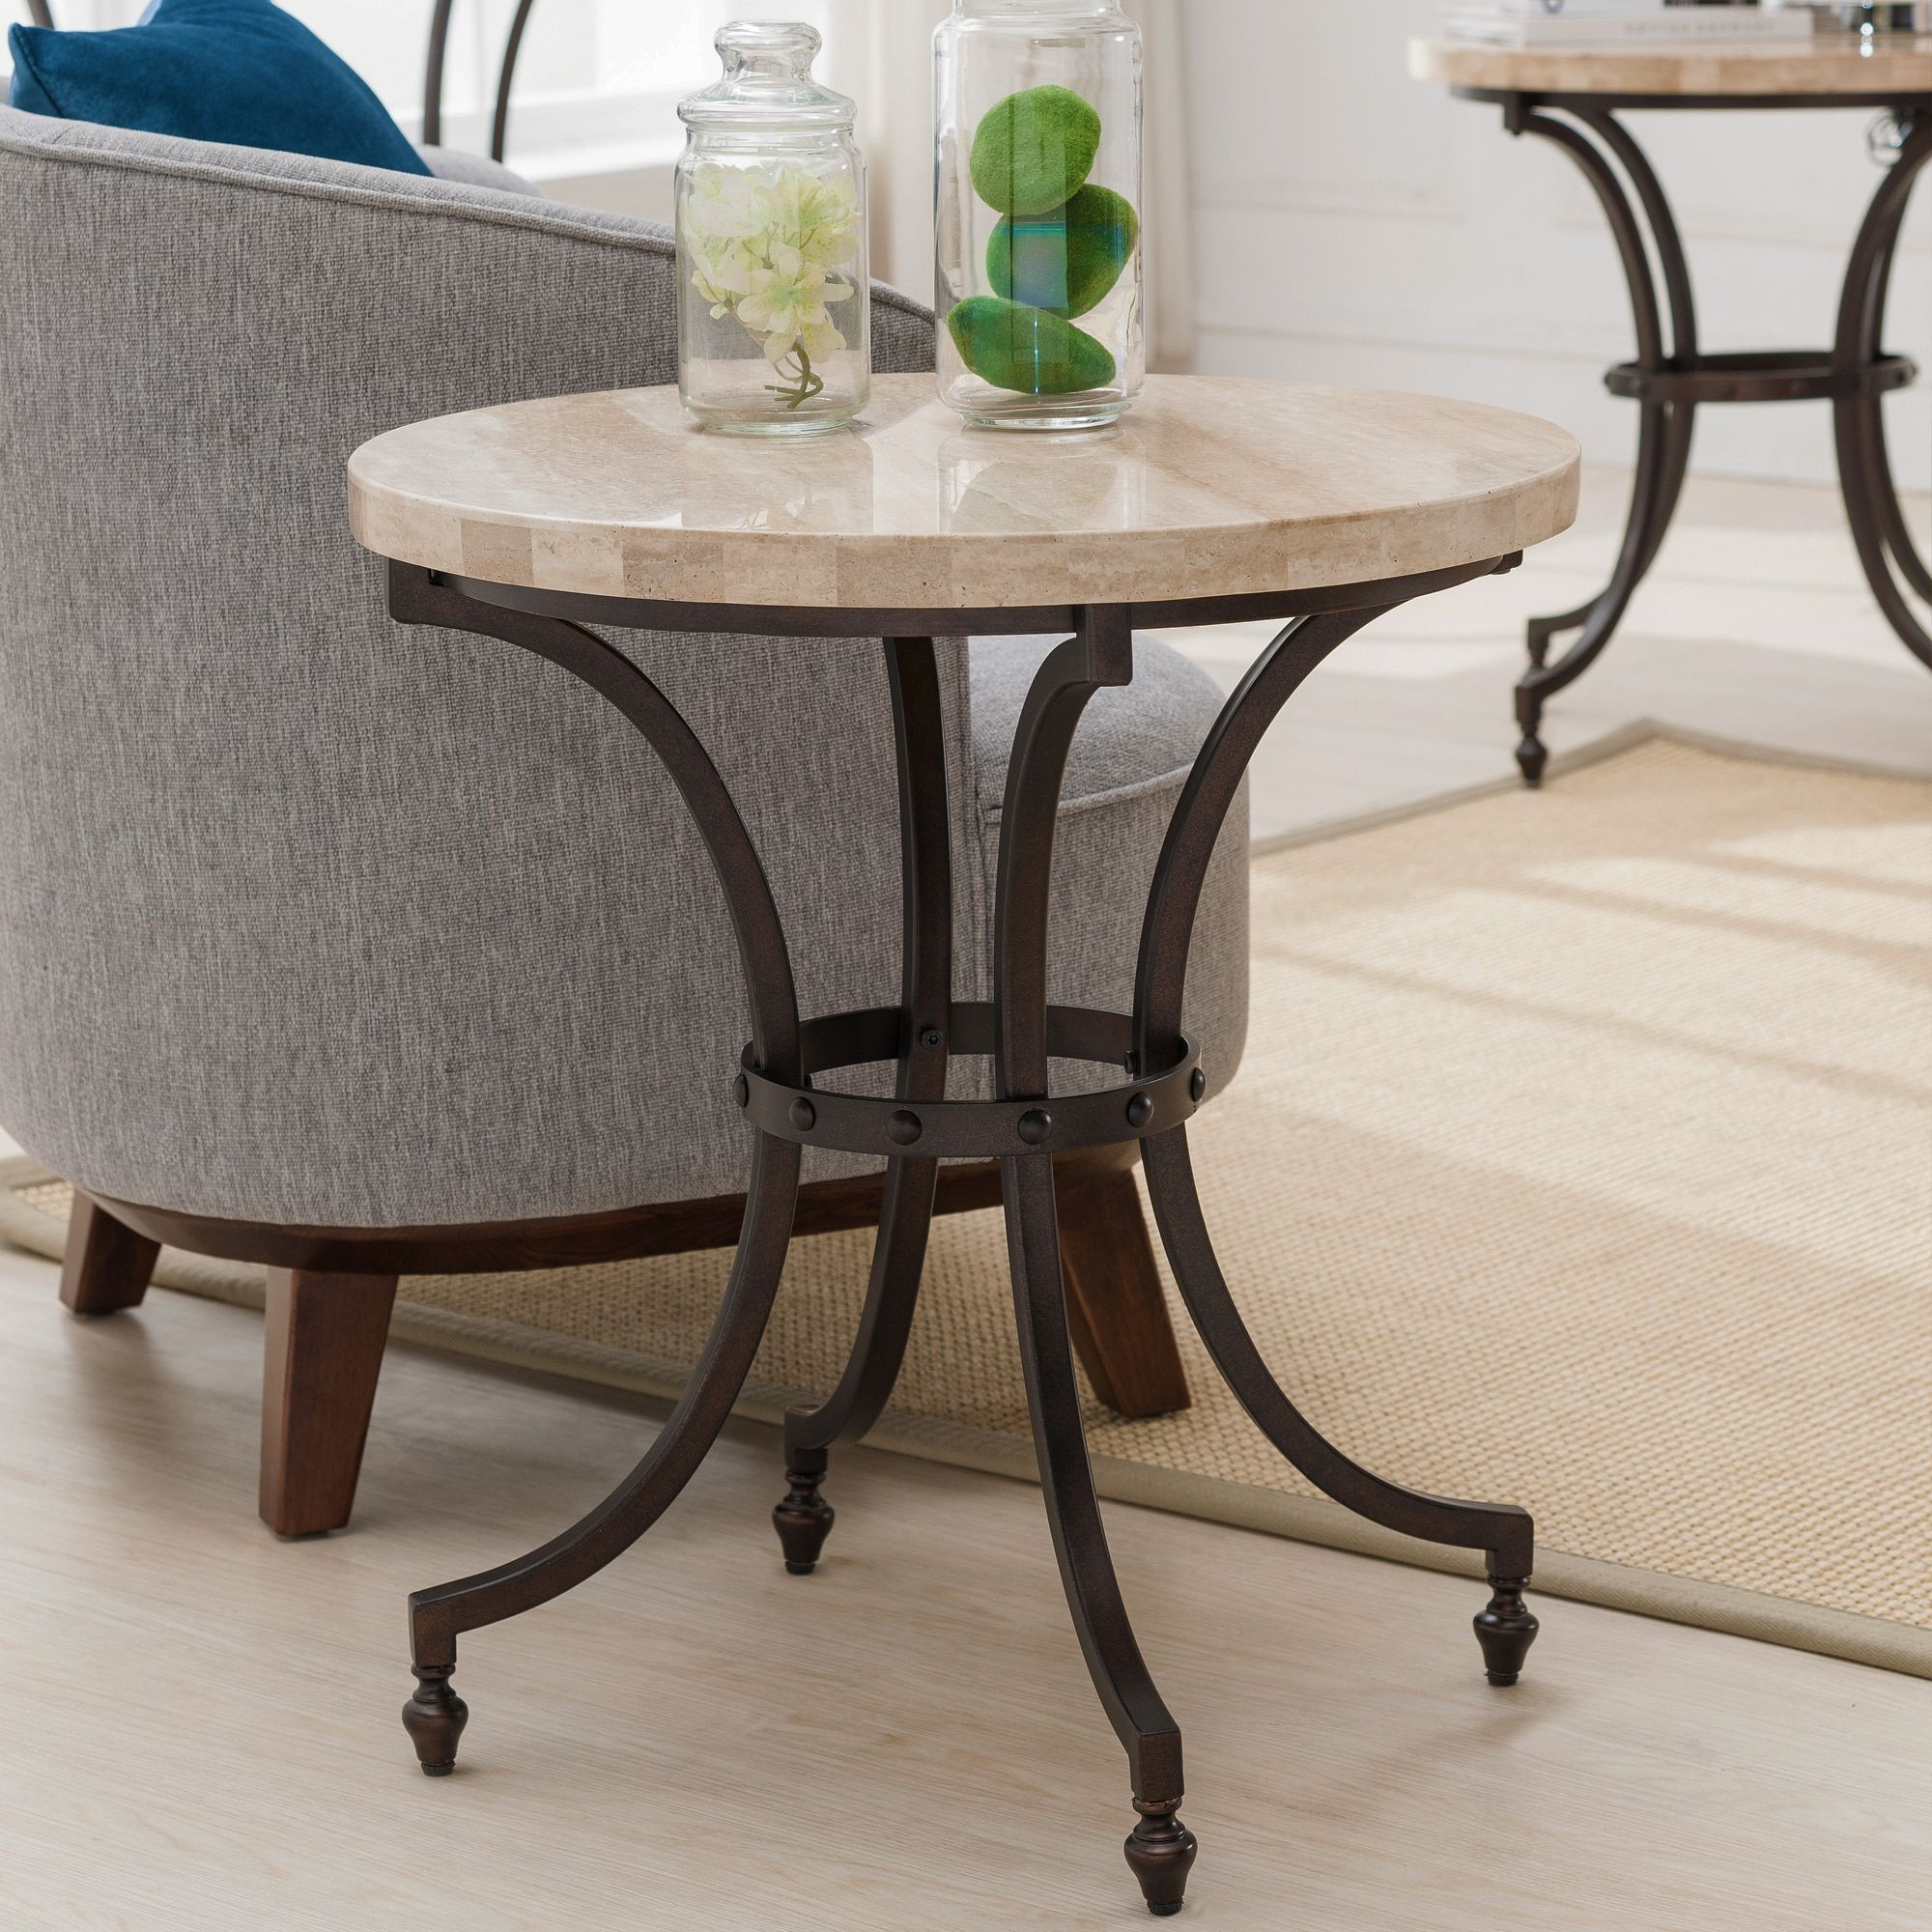 KD Furnishings Round Travertine Stone Top Side Table with Rubbed Bronze Metal Base